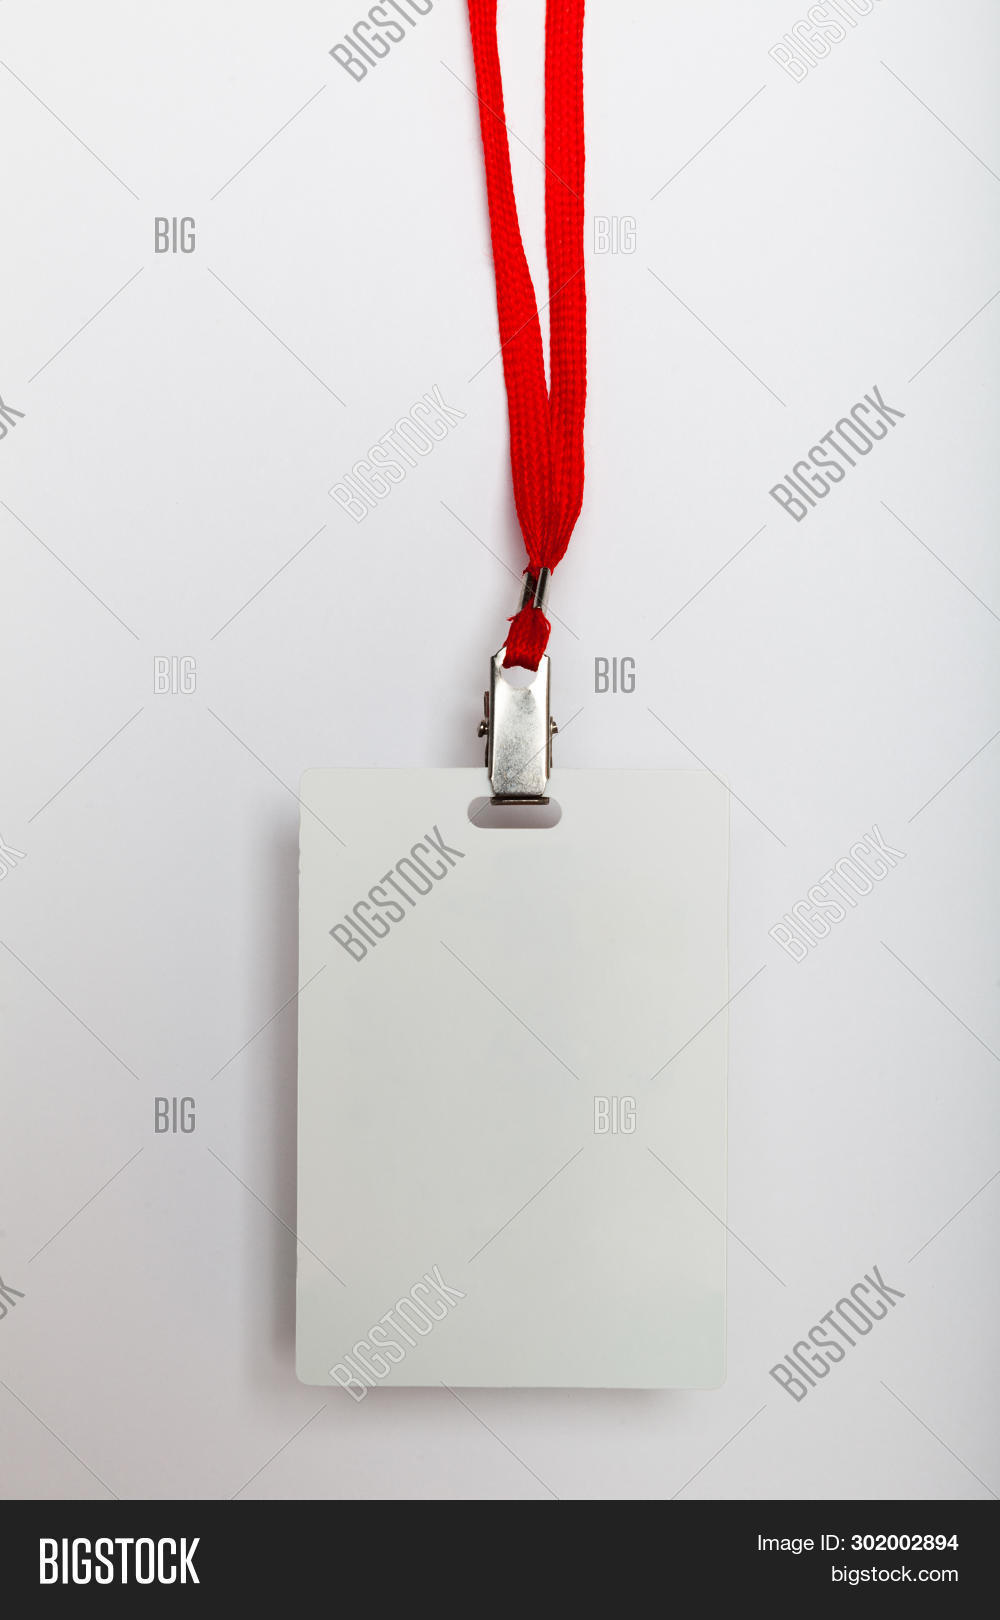 Lanyard Id Tag, Badge Card Blank. Conference Event, Plastic Authority.